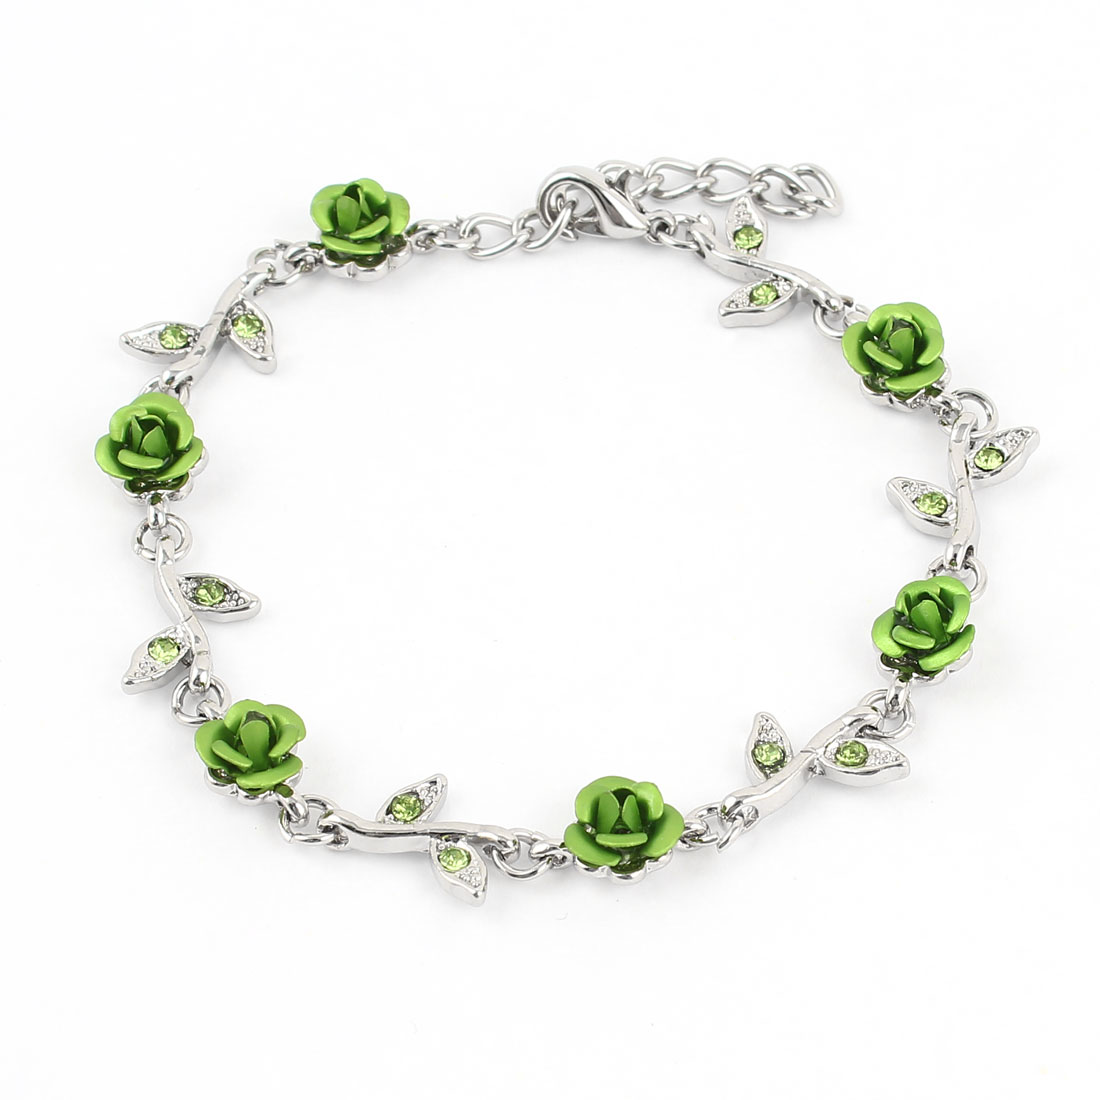 Lady Lobster Hook Rose Decor Adjustable Chain Wrist Bracelet Green Silver Tone